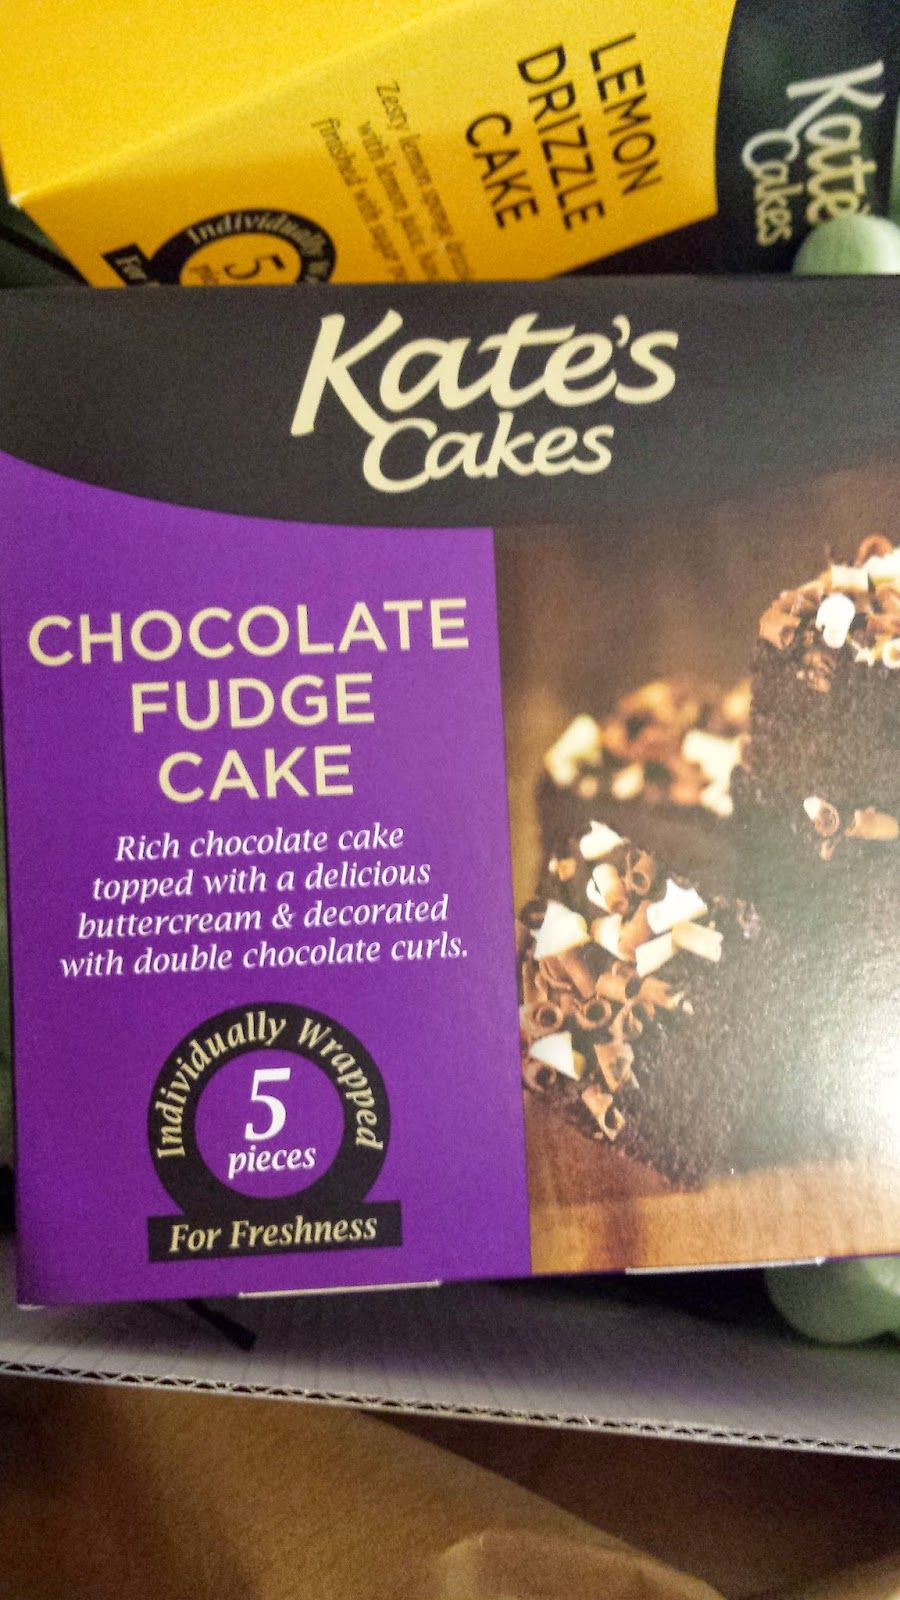 Mummy of a fussy eater Kate's Cakes Review (With images